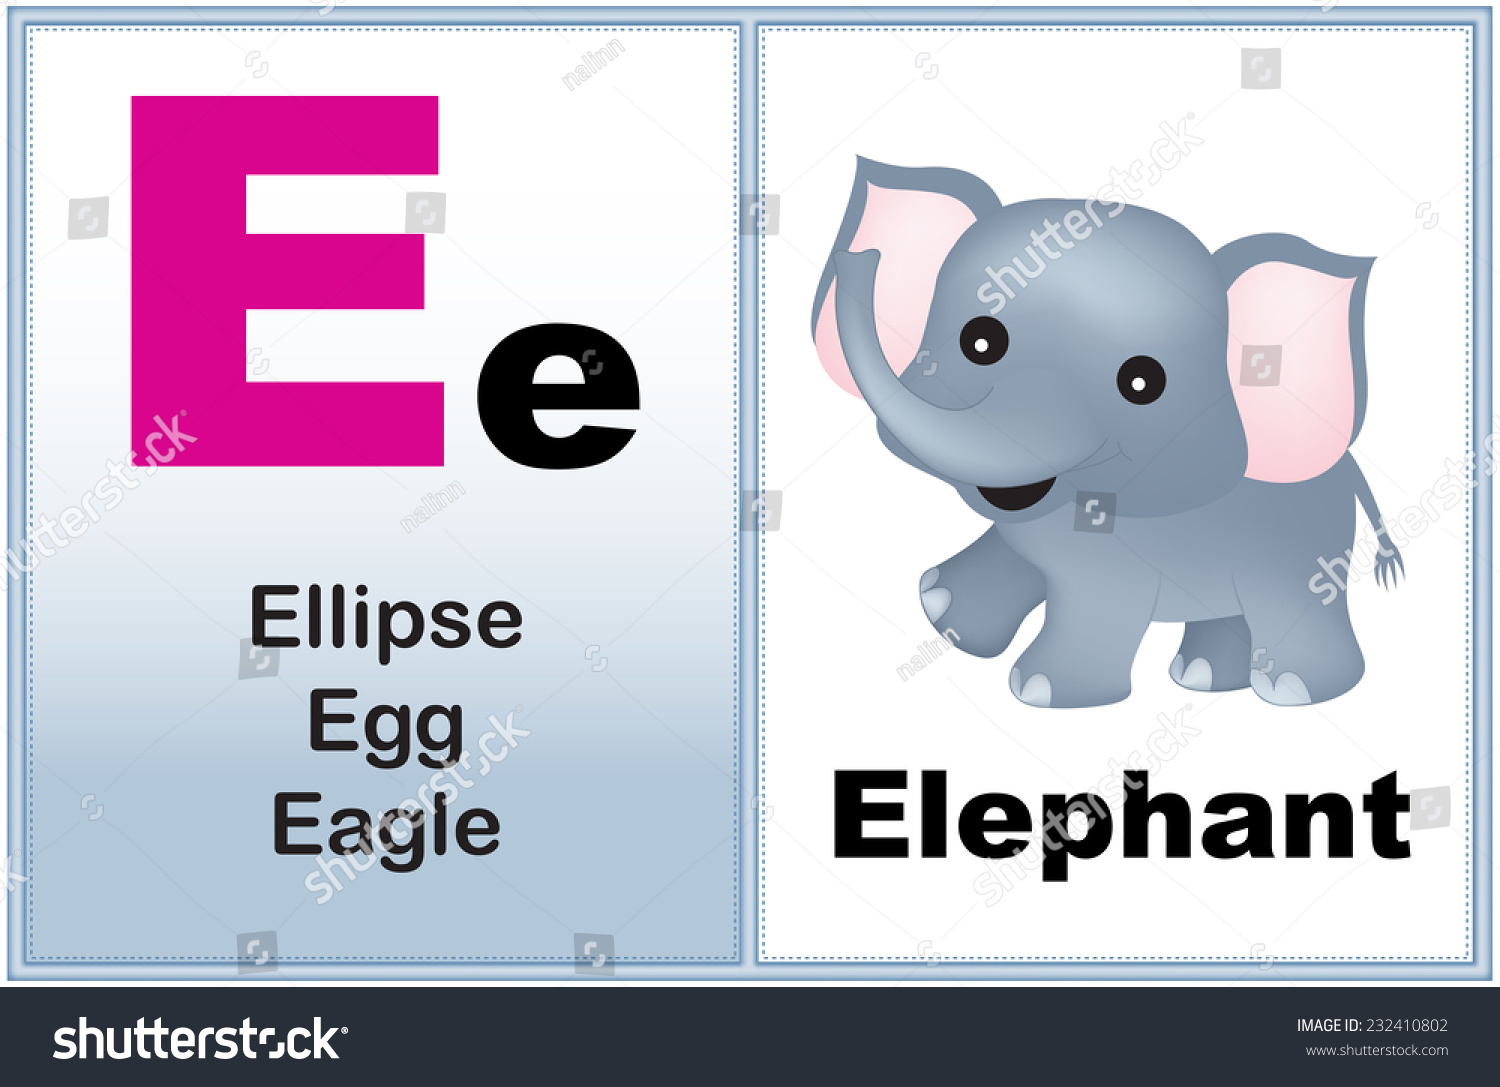 Royalty Free Alphabet Letter E With Clip Art And Few 232410802